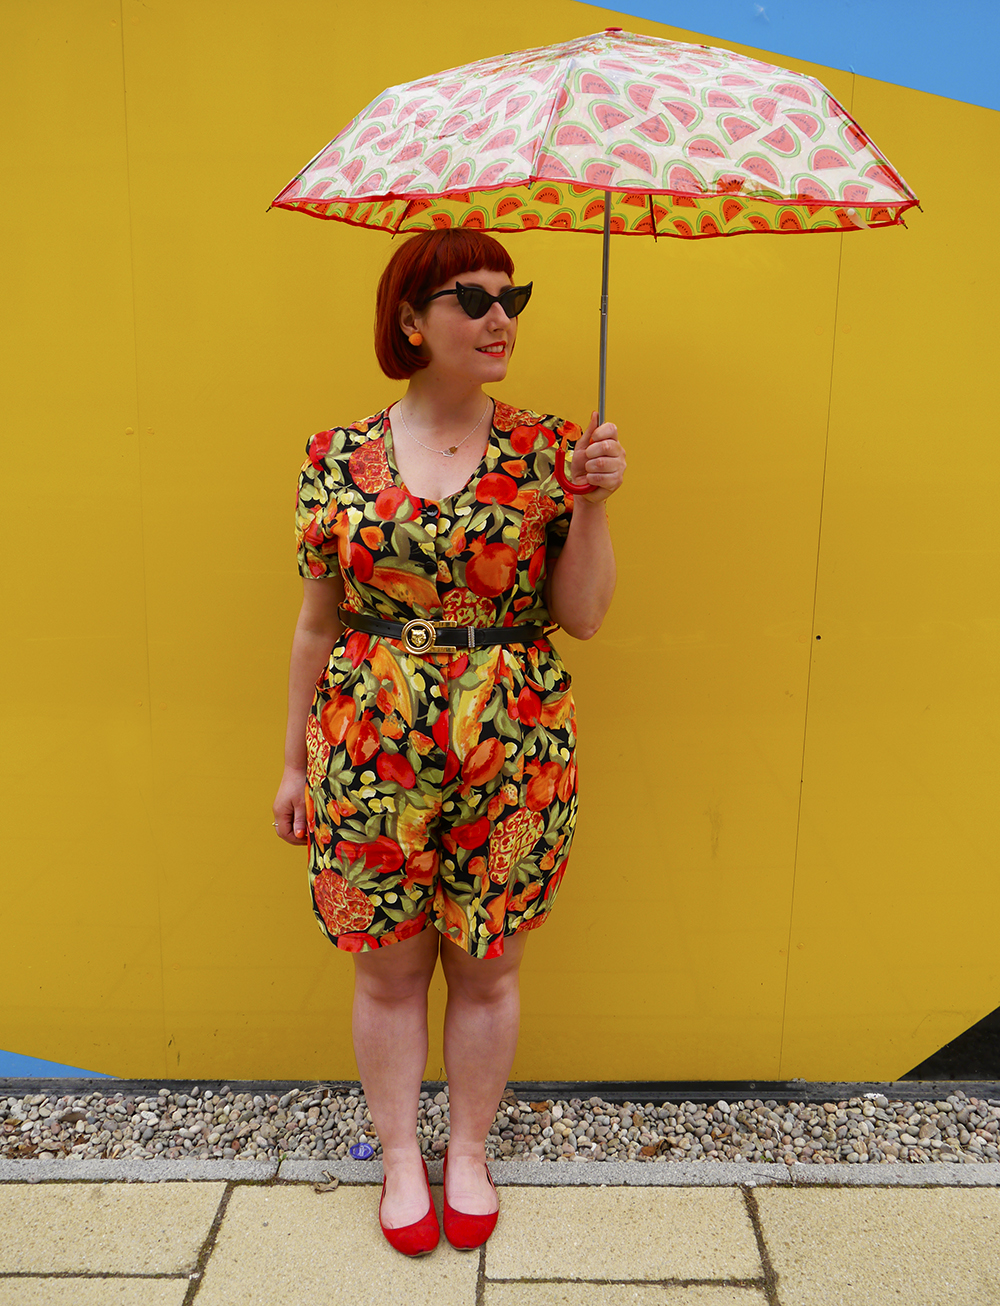 Wardrobe Conversations, Scottish blogger, Scot Street style, Edinburgh Blogger, Edinburgh street style, vintage street style, summer outfit, summer street style, playsuit, fruit pattern playsuit, vintage playsuit, umbrella, watermelon umbrella, colourful blogger style, bright colours, Nicely Eclectic vintage, Paperchae umbrella, Vintage sunglasses, cat eye sunglasses, summer style, summer tan, fake tan, natural fake tan, easy fake tan, tanning tips